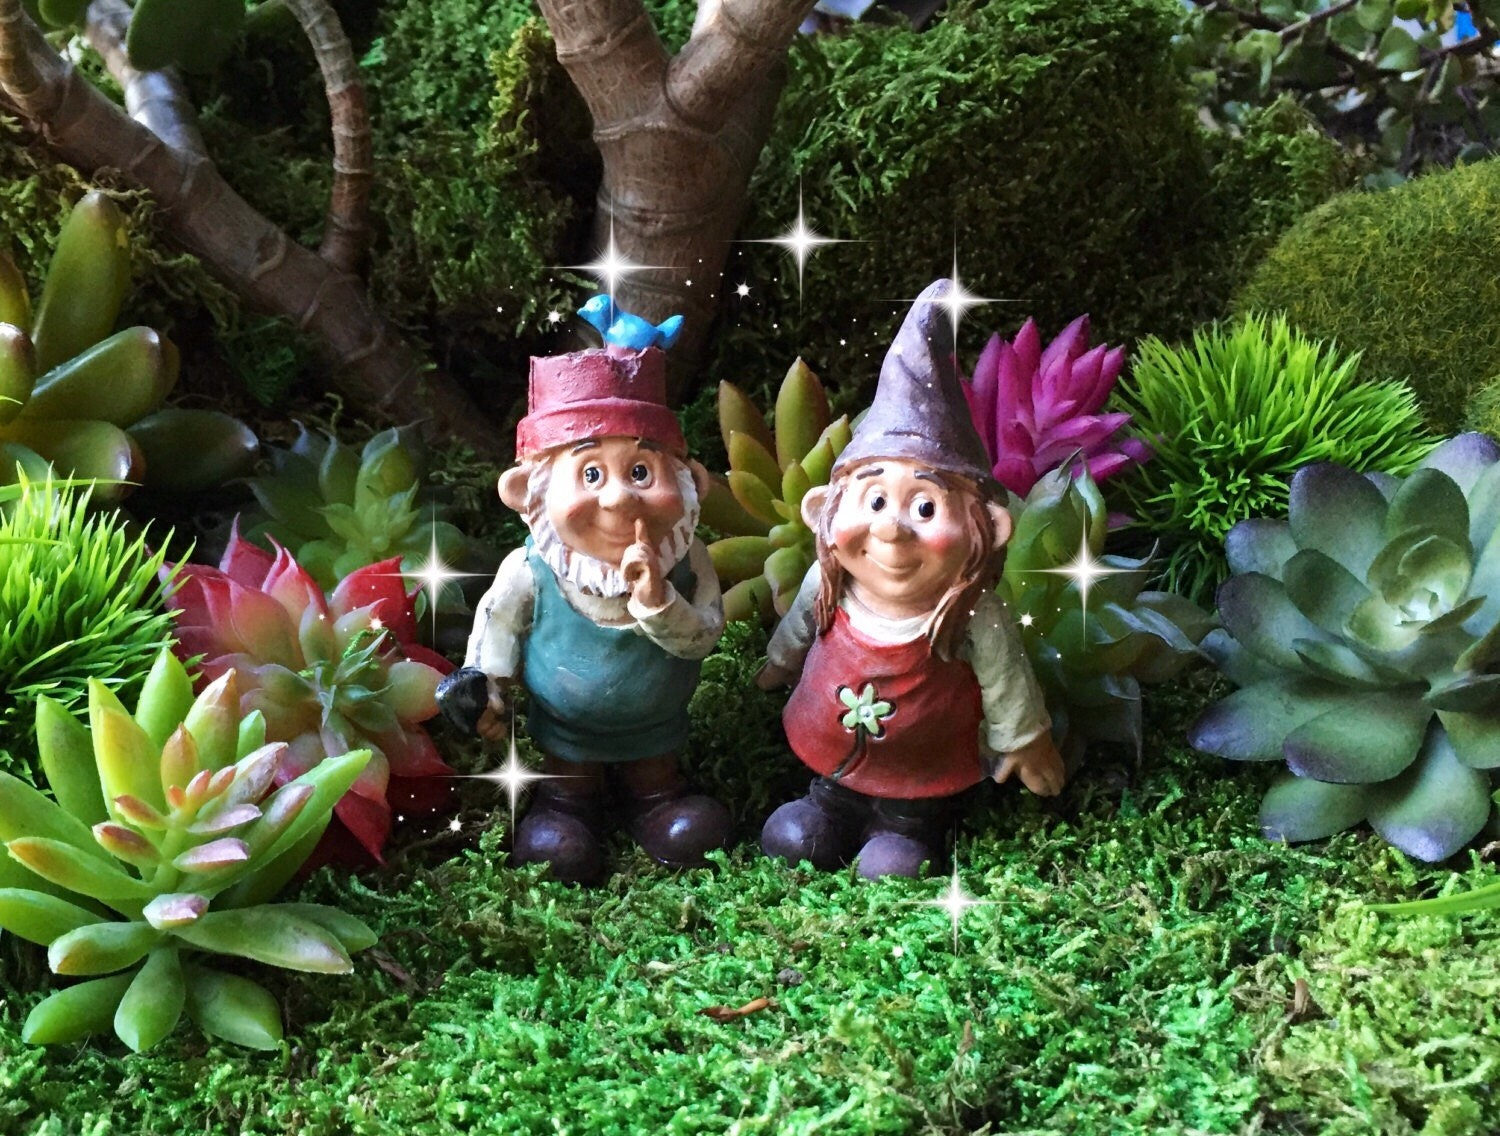 Gnome Garden: Fairy Garden Gnome Couple, Miniature Garden Gnome